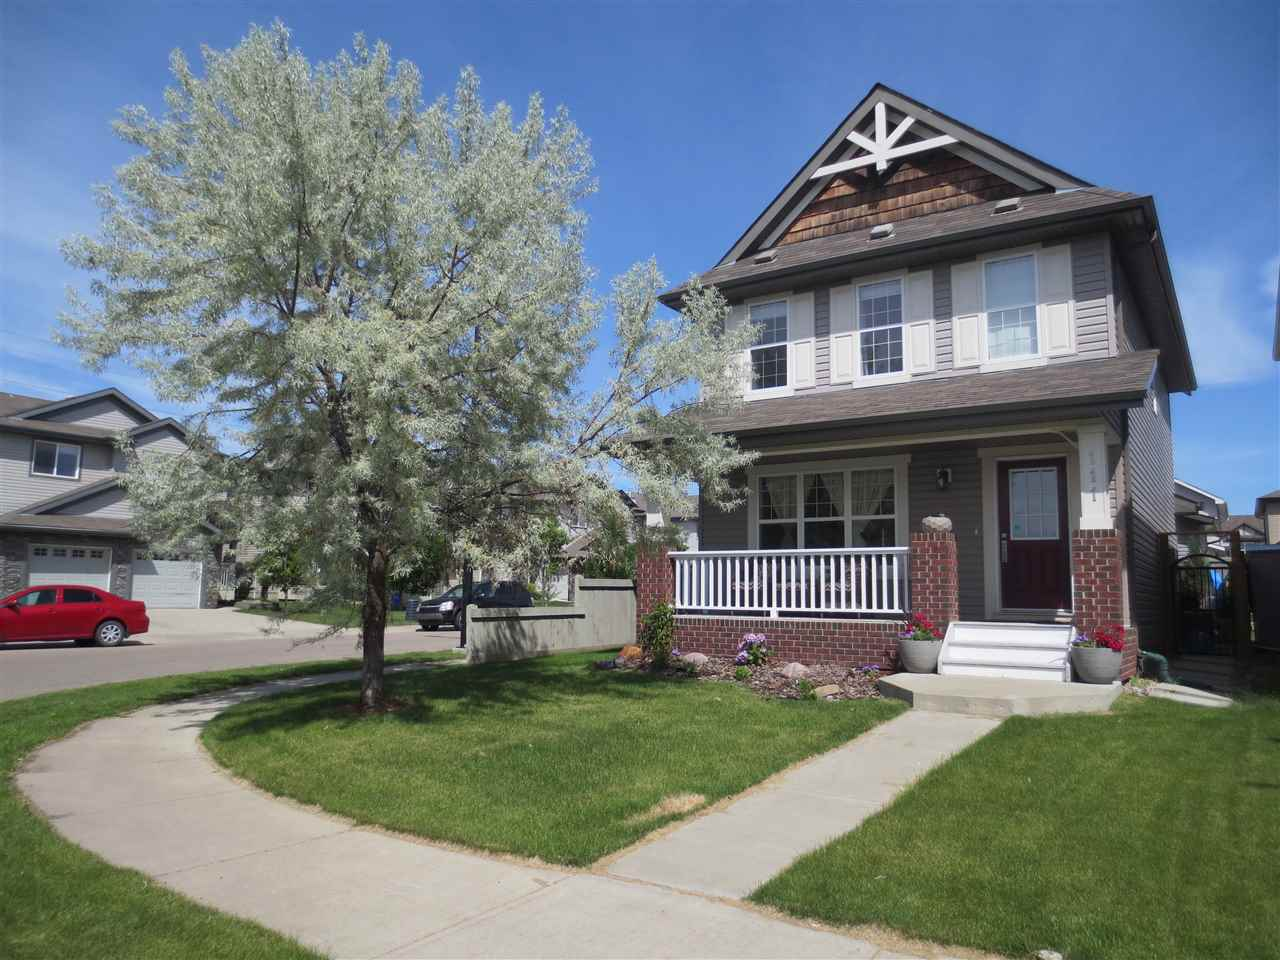 Main Photo: 111 61 Street in Edmonton: Zone 53 House for sale : MLS(r) # E4069902